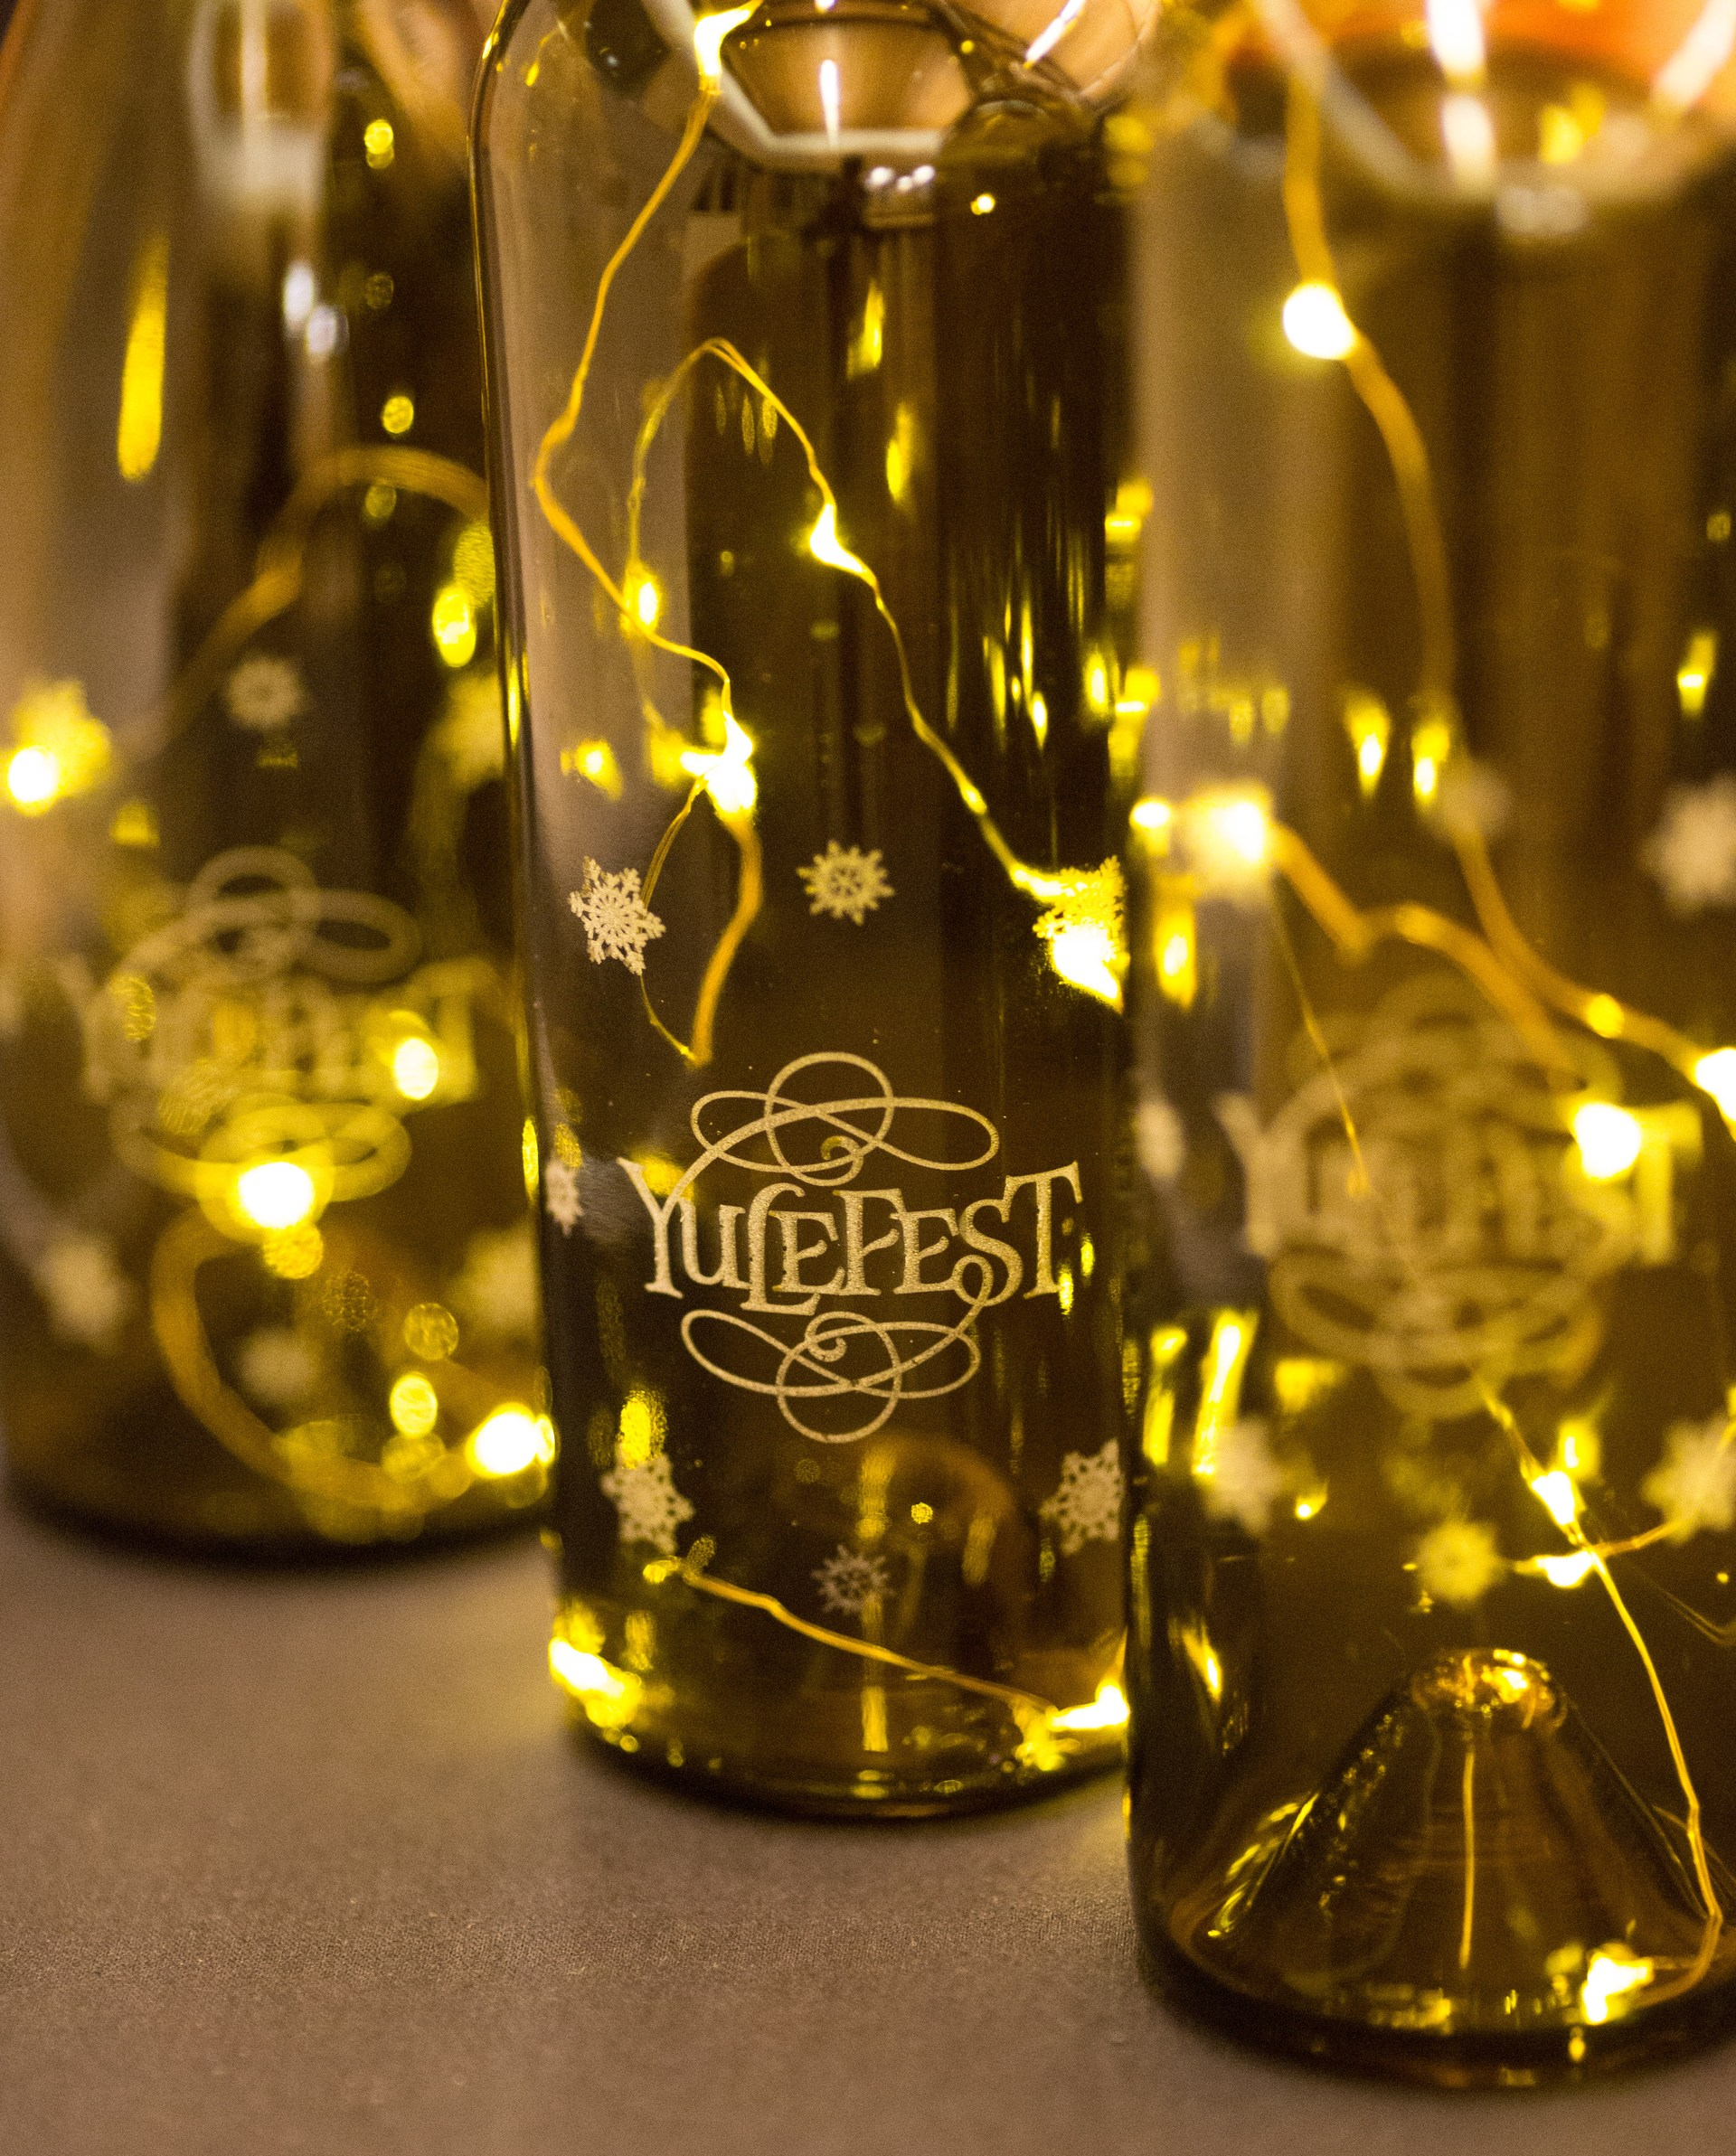 Yulefest wine bottles.